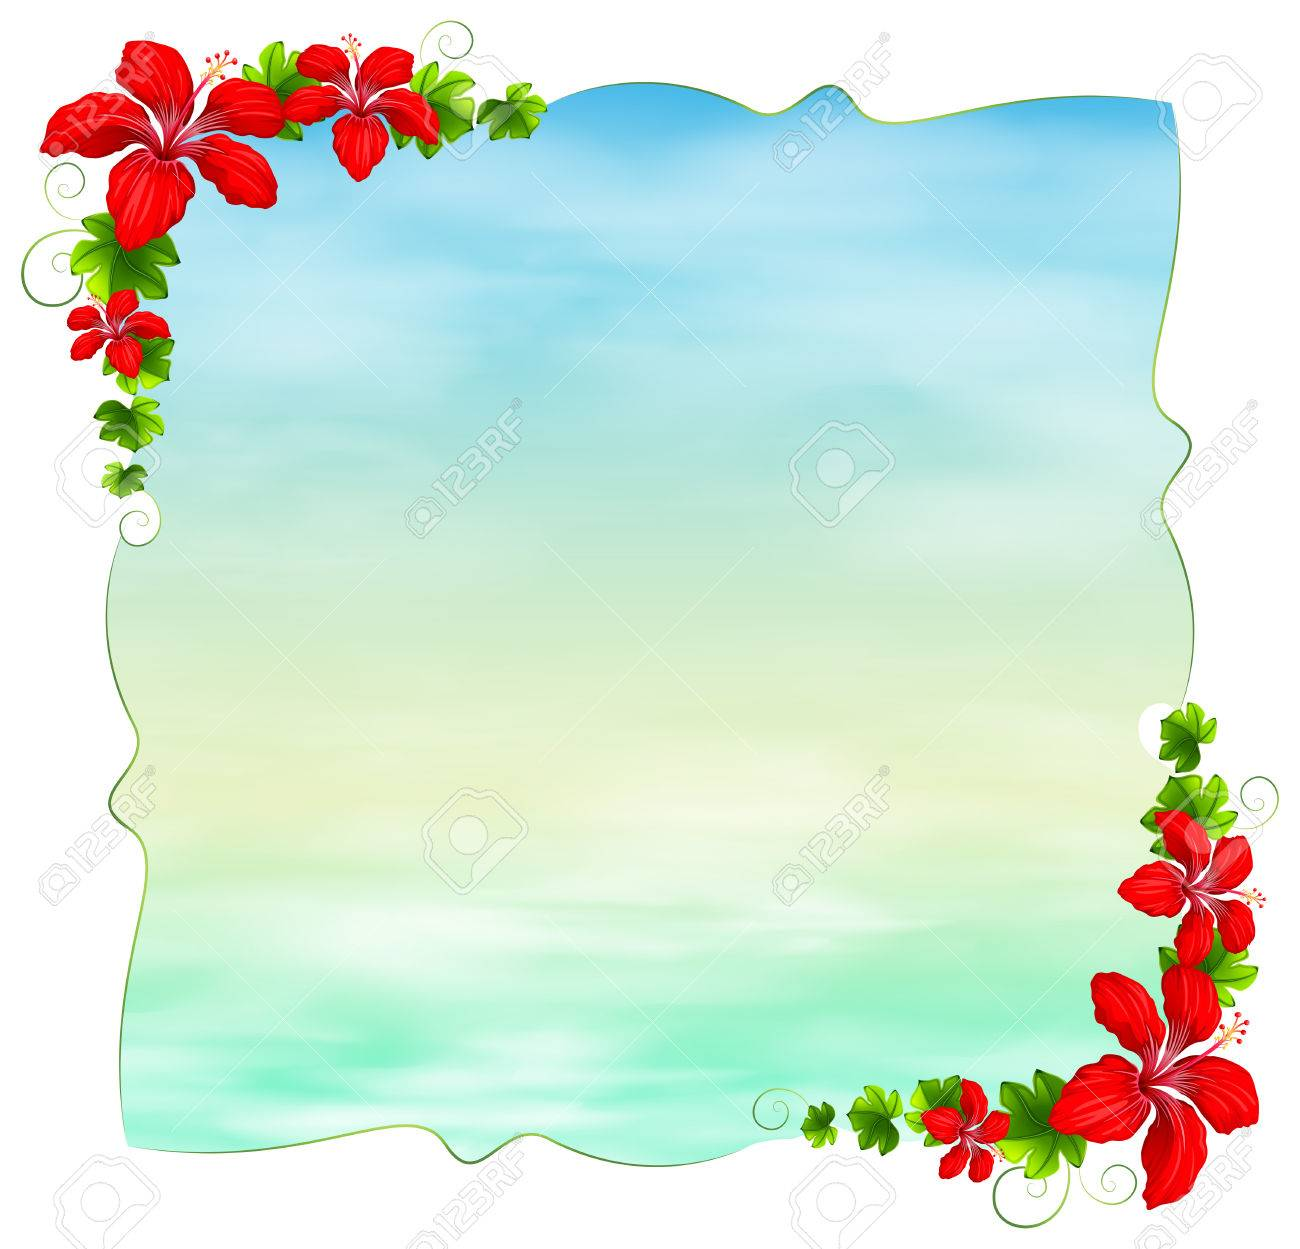 Illustration Of An Empty Template With Floral Borders On A White 1300x1249